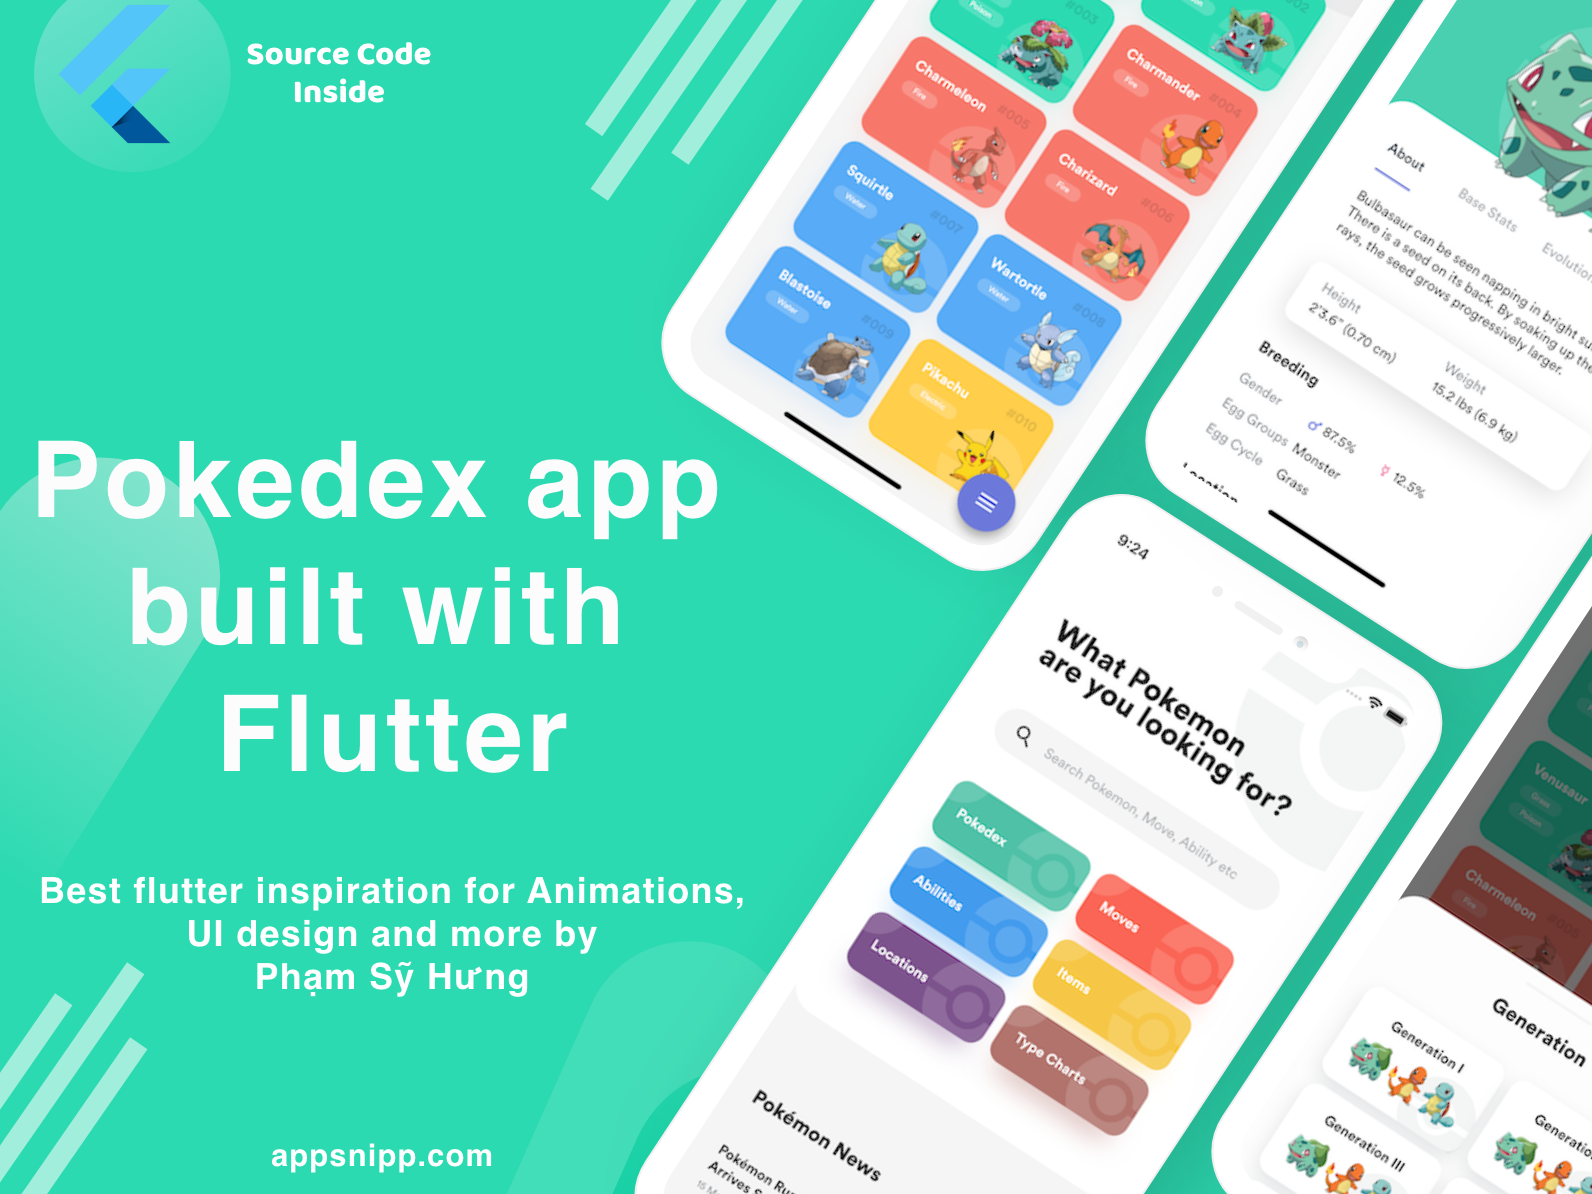 Flutter Inspiration for animations, ui designs by Phạm Sỹ